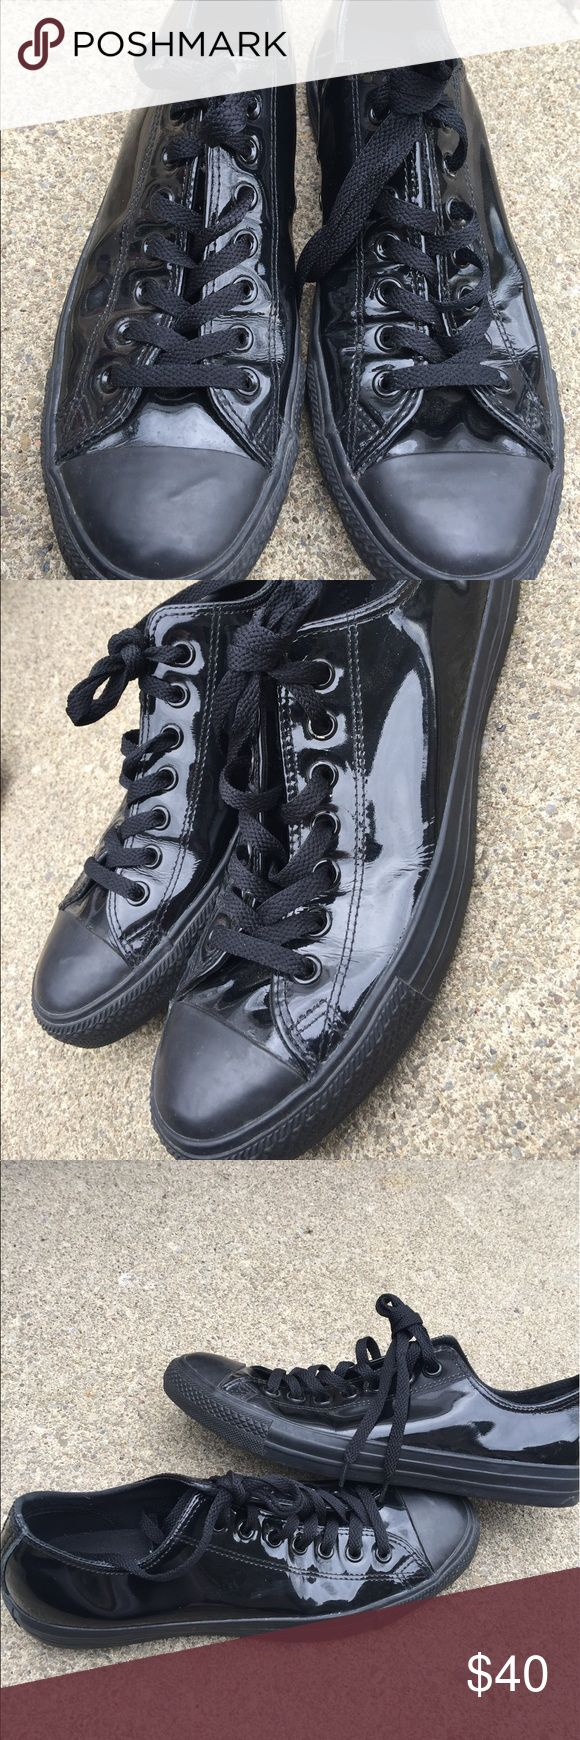 Men's Converse Black Patent Leather Sneakers 9.5M Men's Converse Black Patent Leather Sneakers 9.5M Awesome Condition Converse Shoes Sneakers